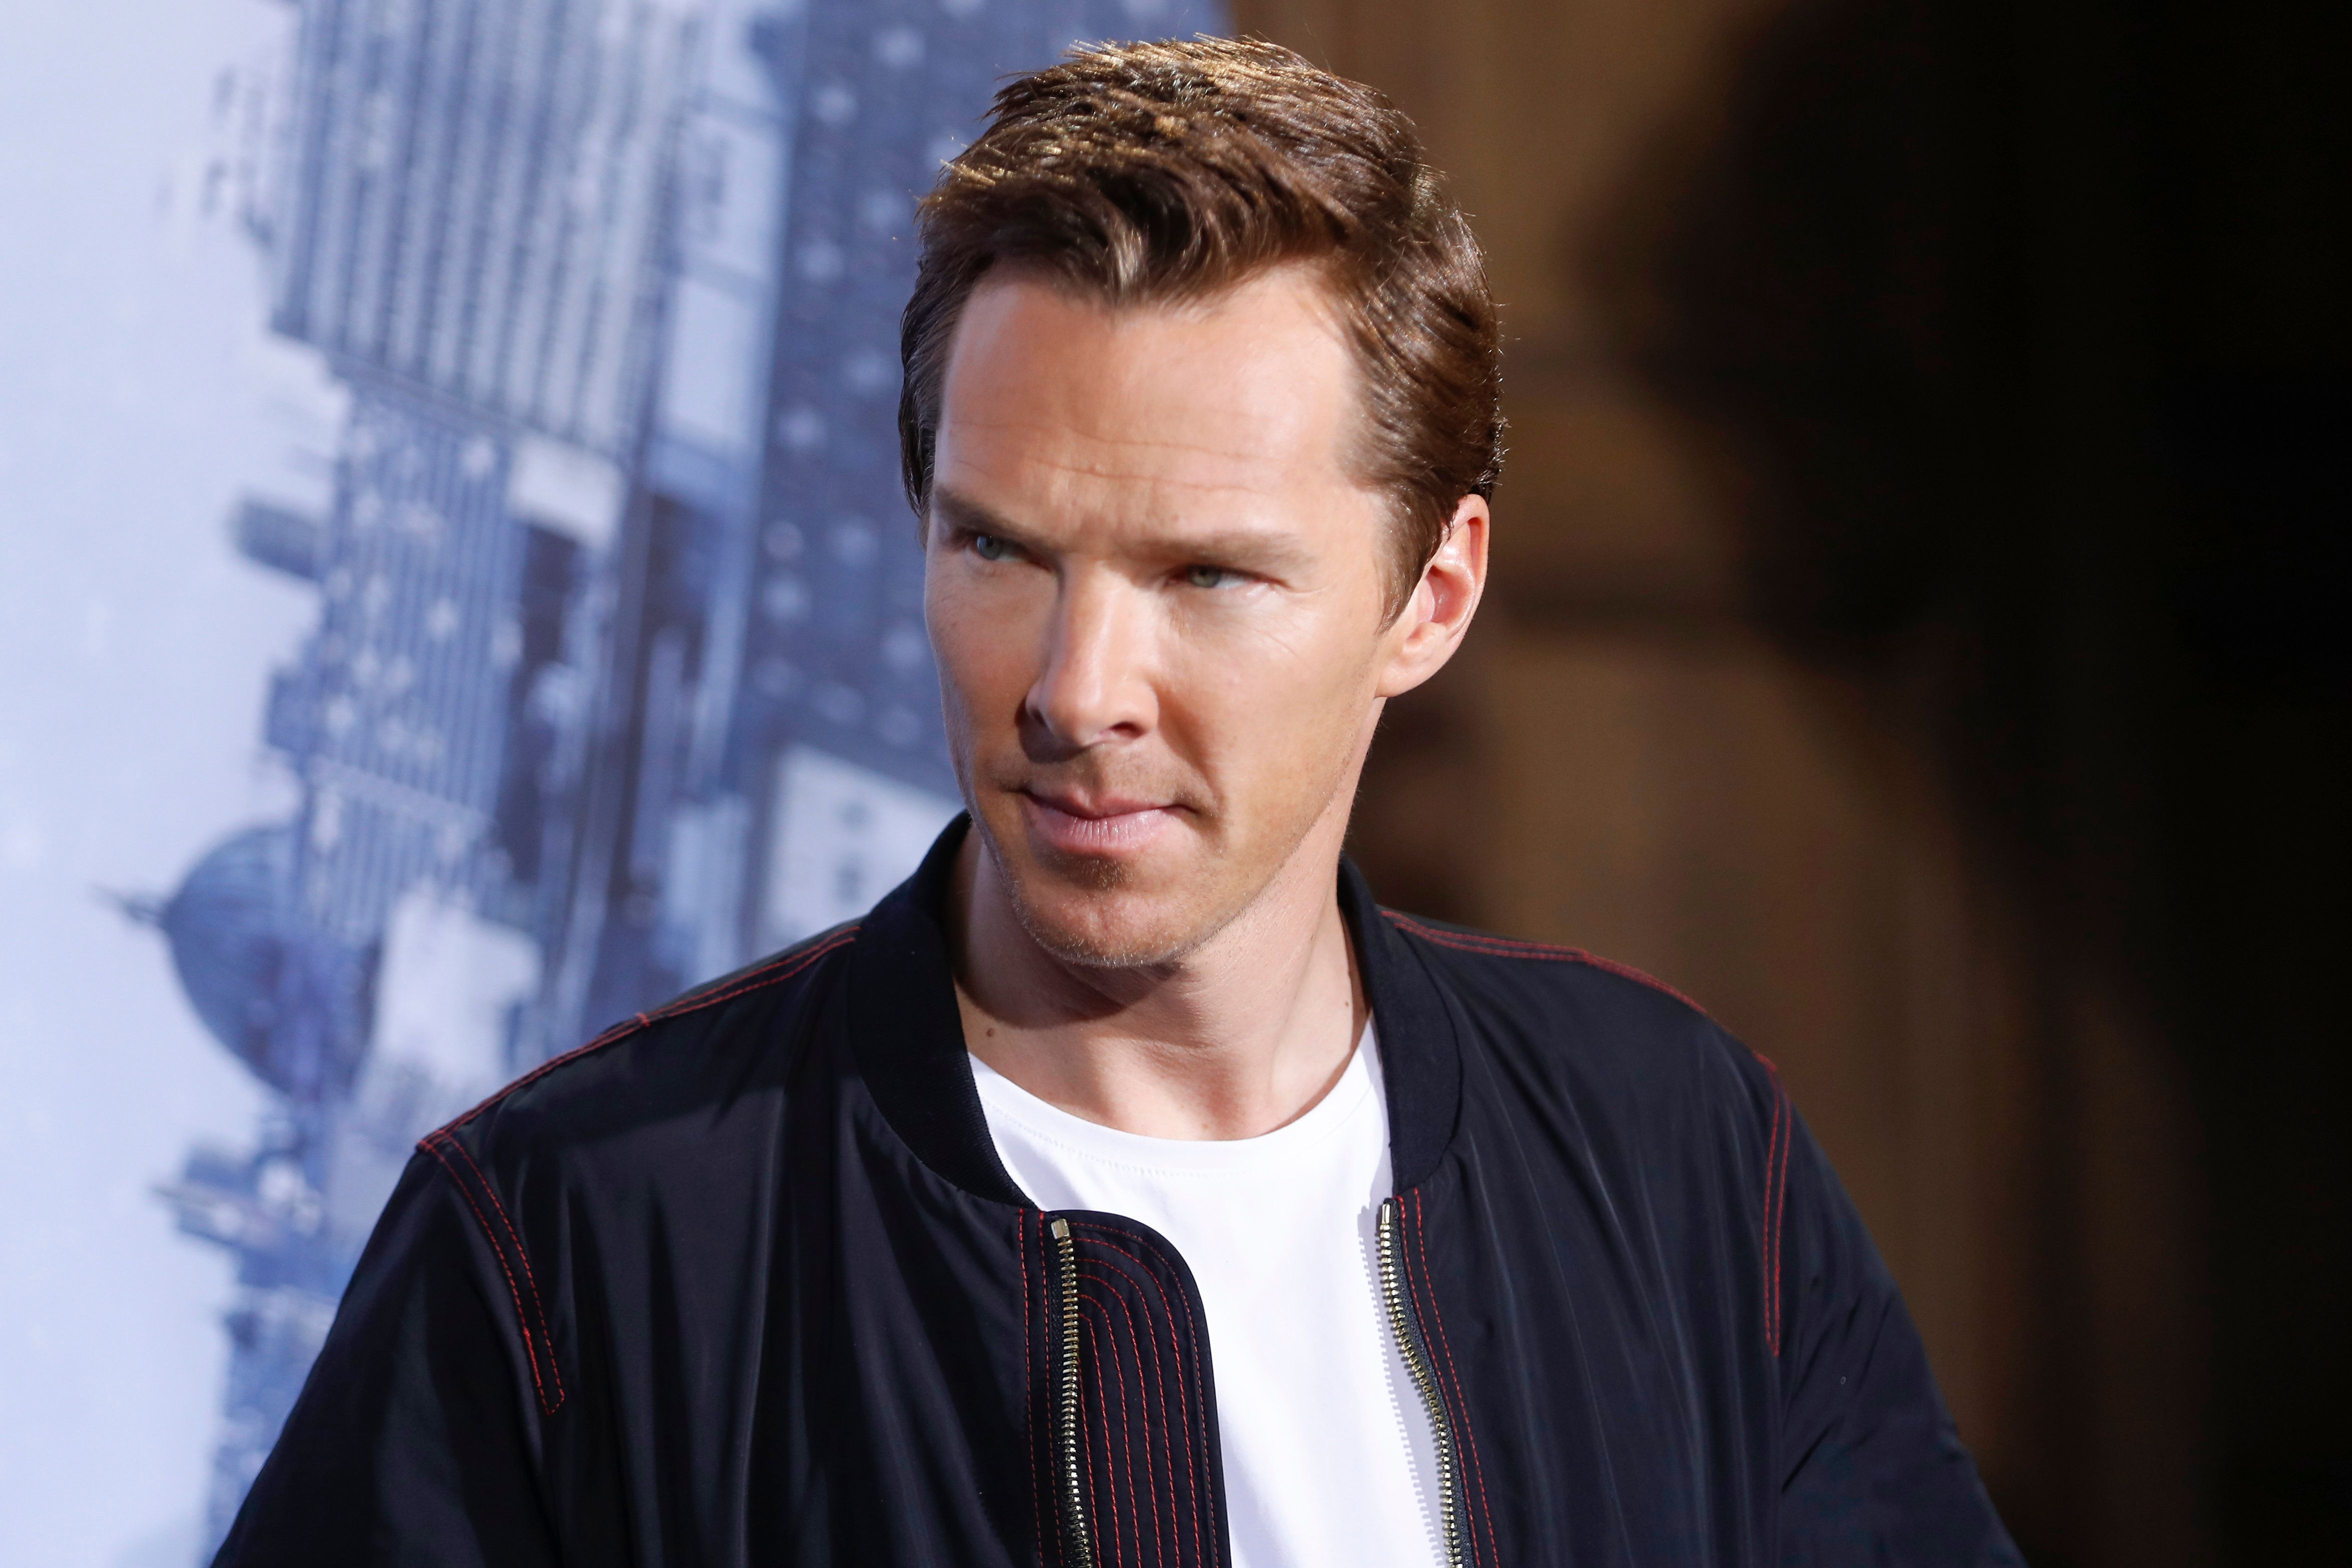 BERLIN, GERMANY - OCTOBER 26:  Benedict Cumberbatch attends the 'Doctor Strange' photocall at Soho House on October 26, 2016 in Berlin, Germany. (Photo by Franziska Krug/Getty Images)